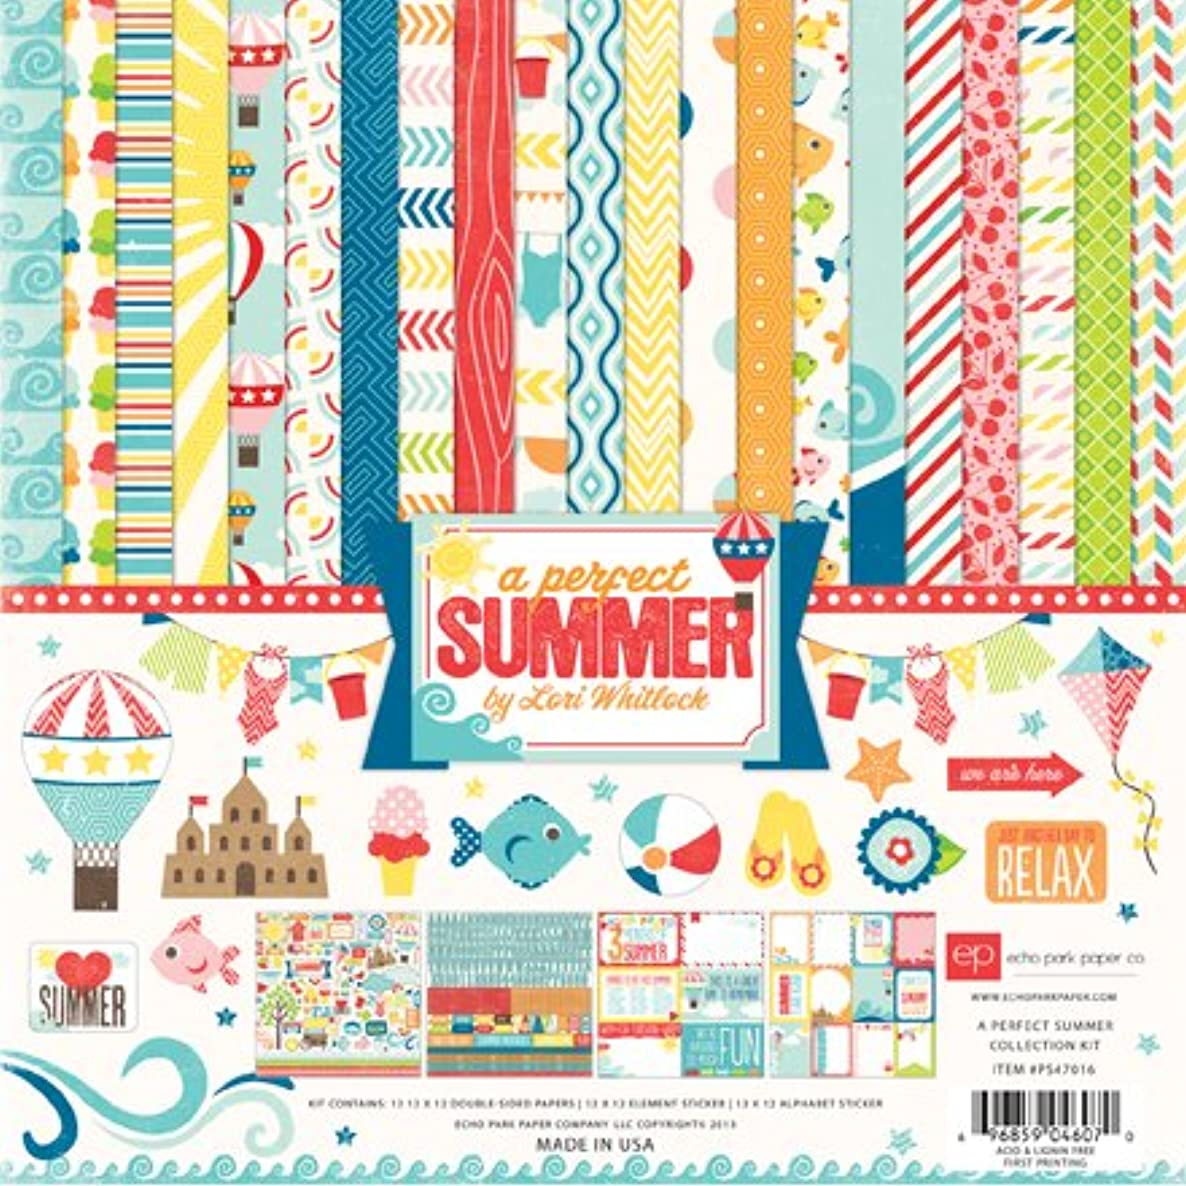 Echo Park Paper Company A Perfect Summer Scrapbooking Collection Kit by Lori Whitlock Features Hot Air Balloons, Fish, Ice Cream, Beach Balls, Star Fish, Flip Flops and More